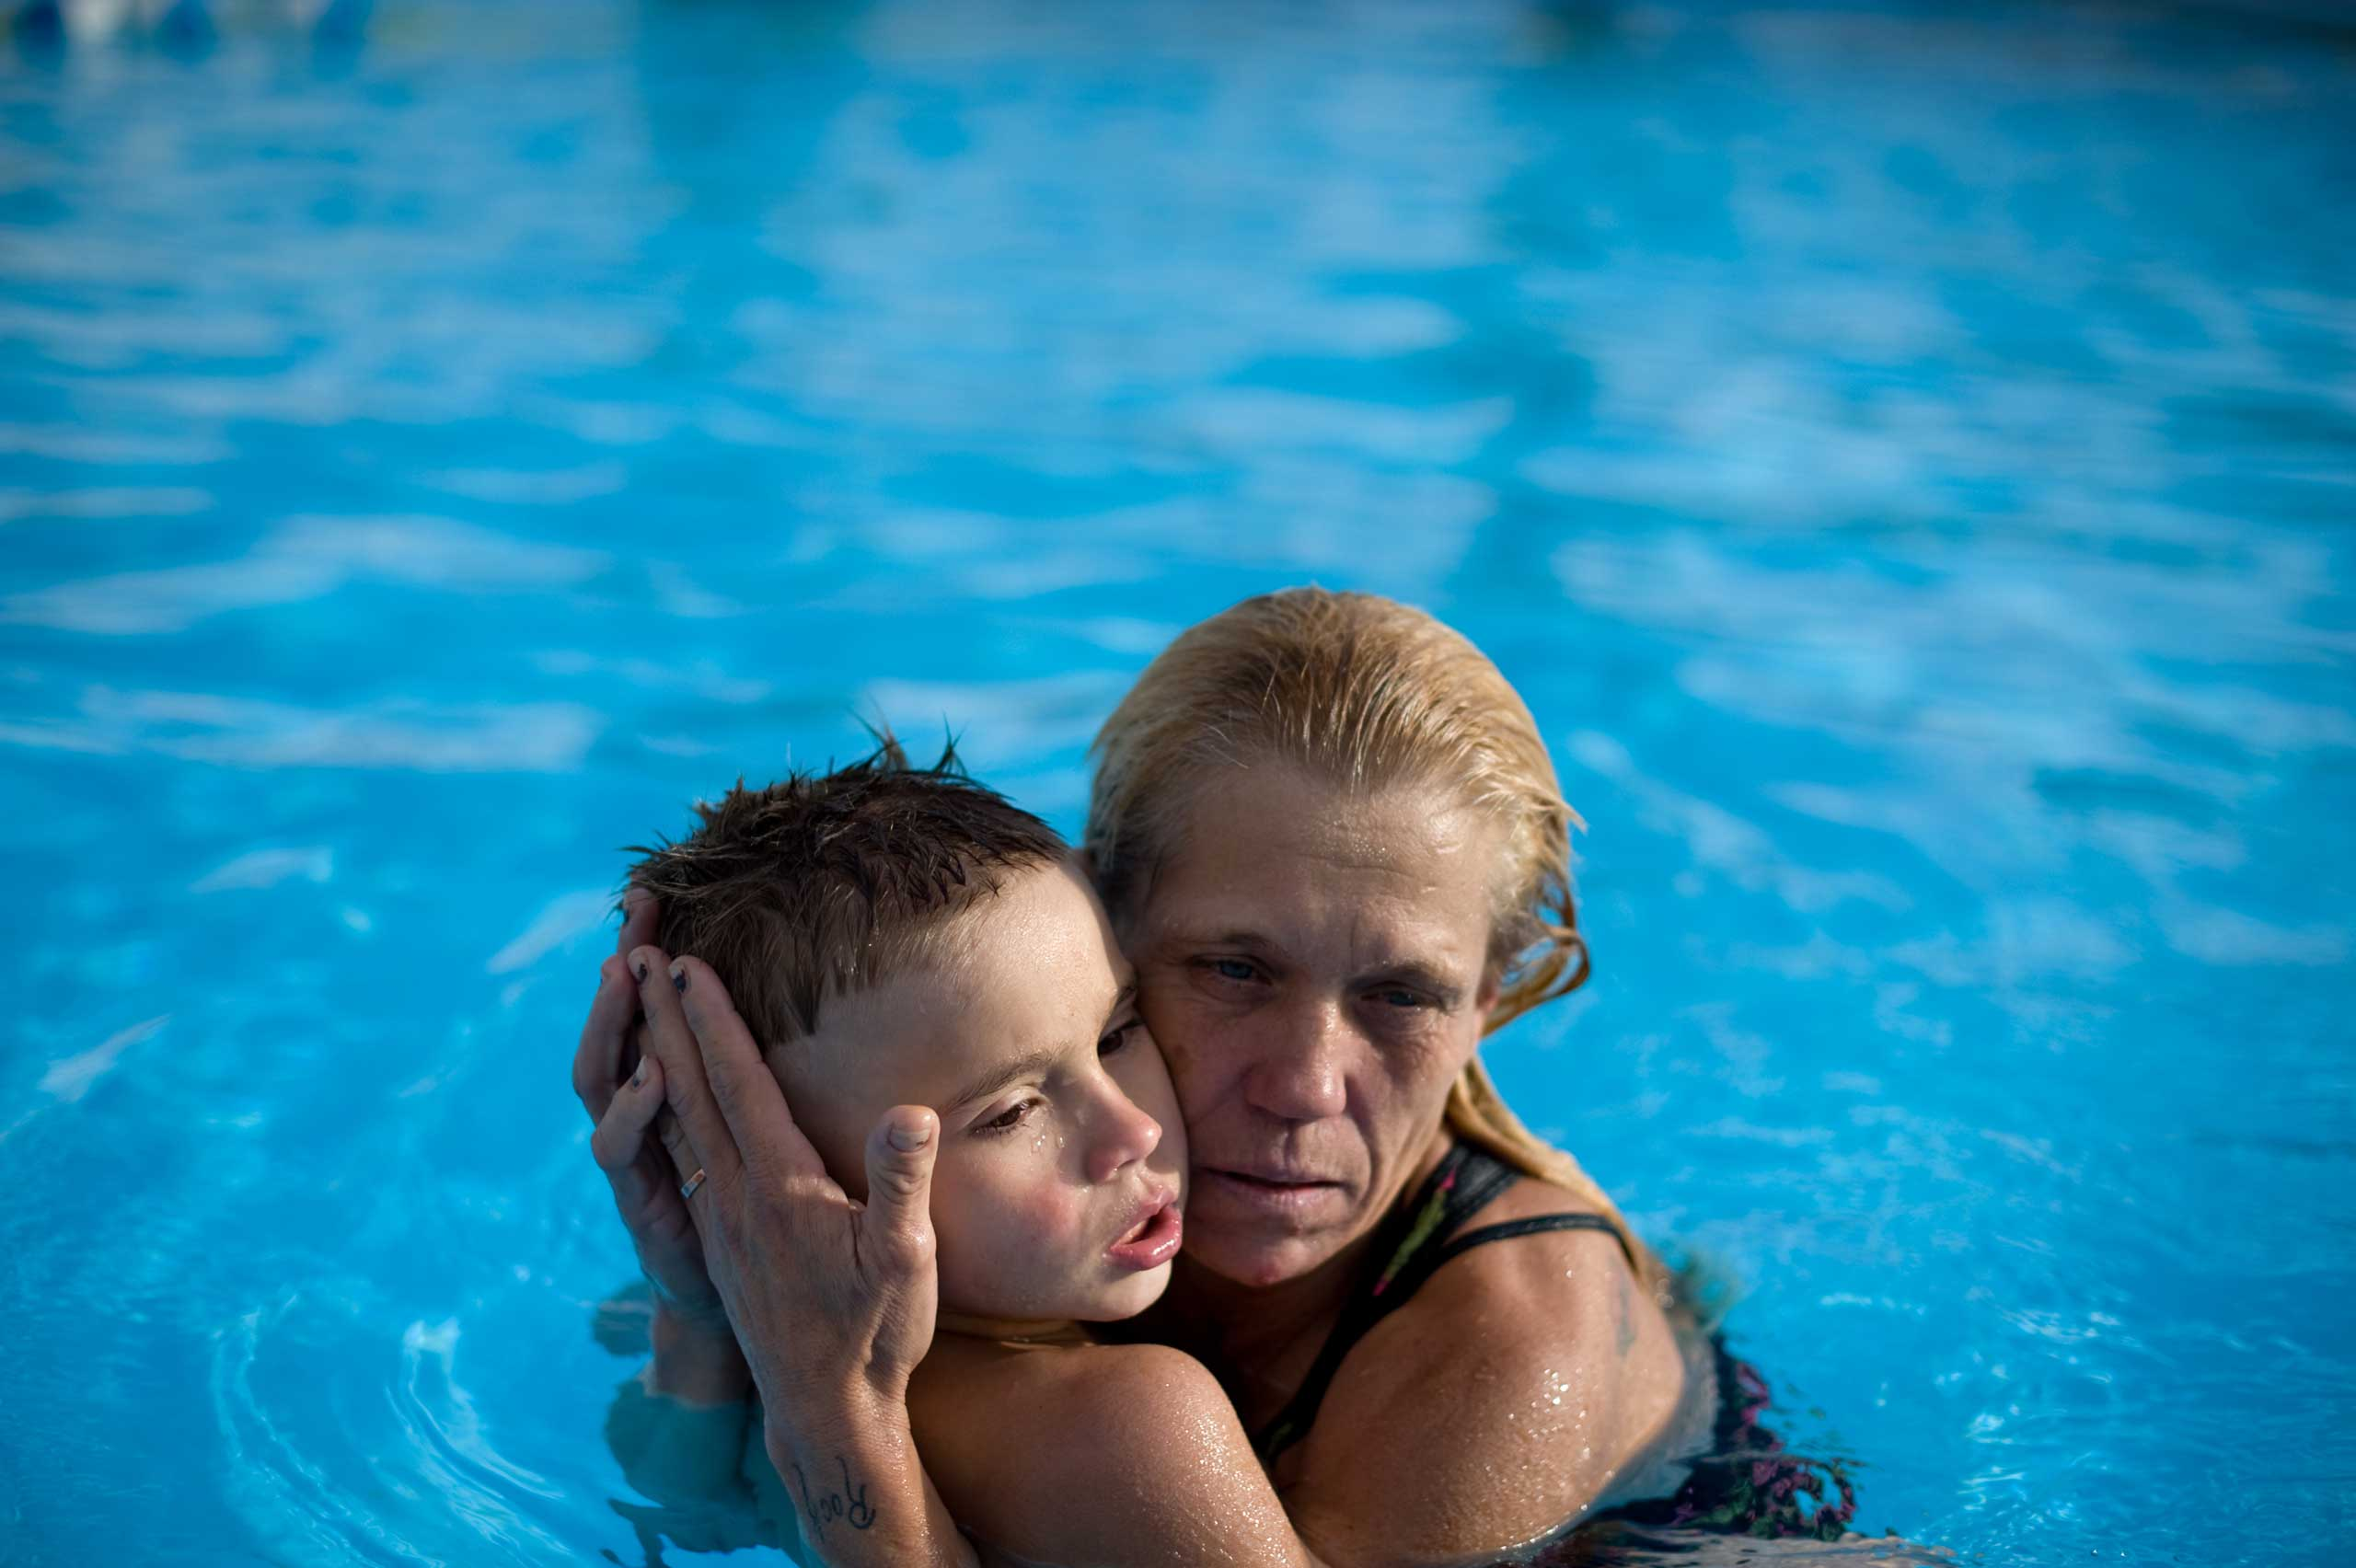 Eve holds Michael in the pool at a motel.